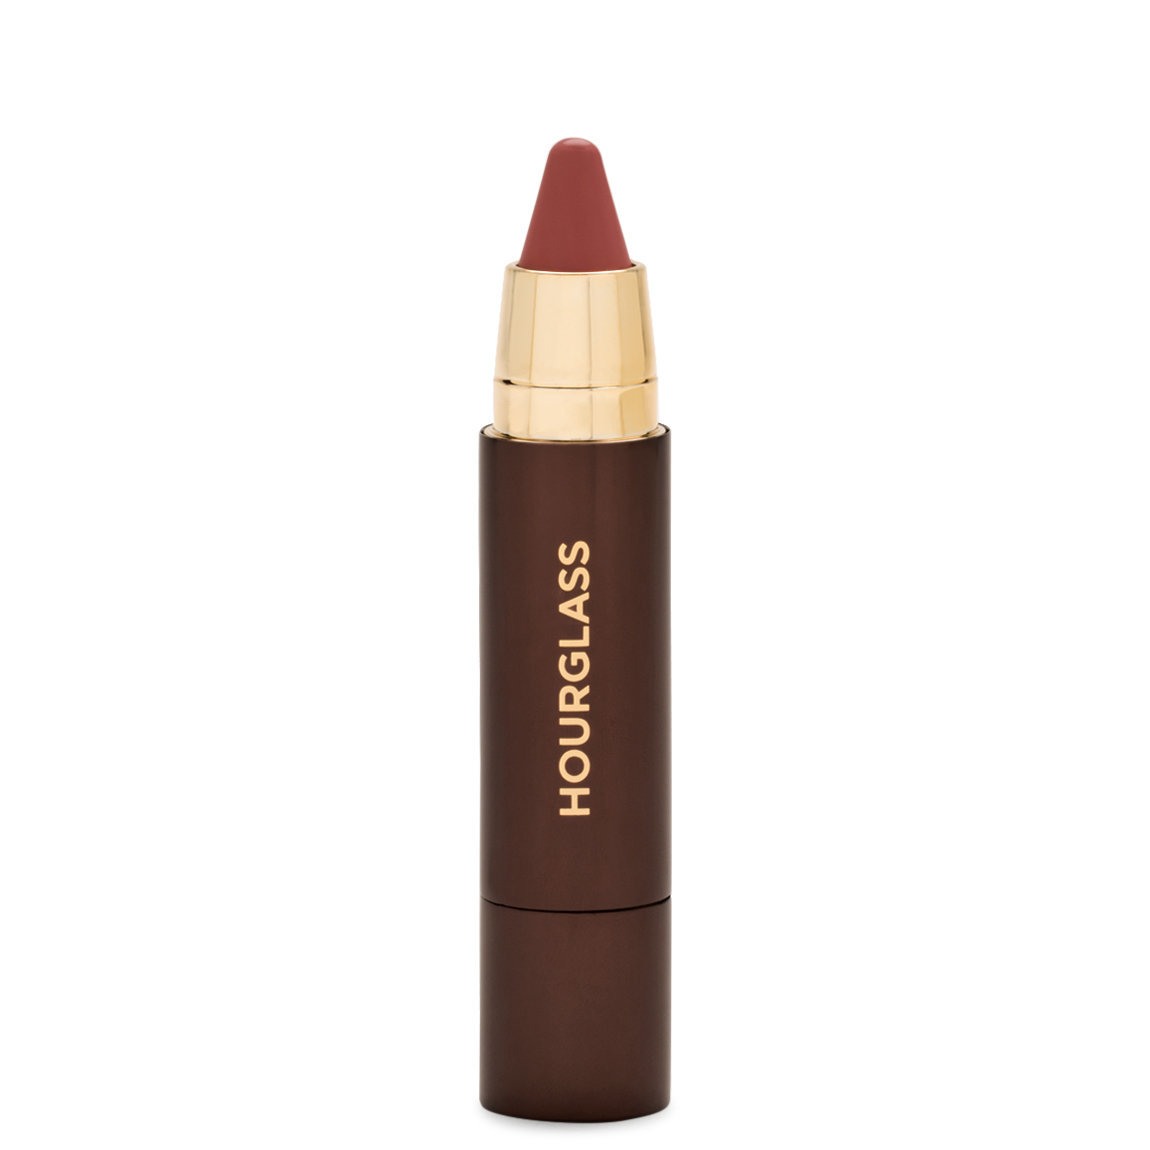 Hourglass GIRL Lip Stylo Peacemaker